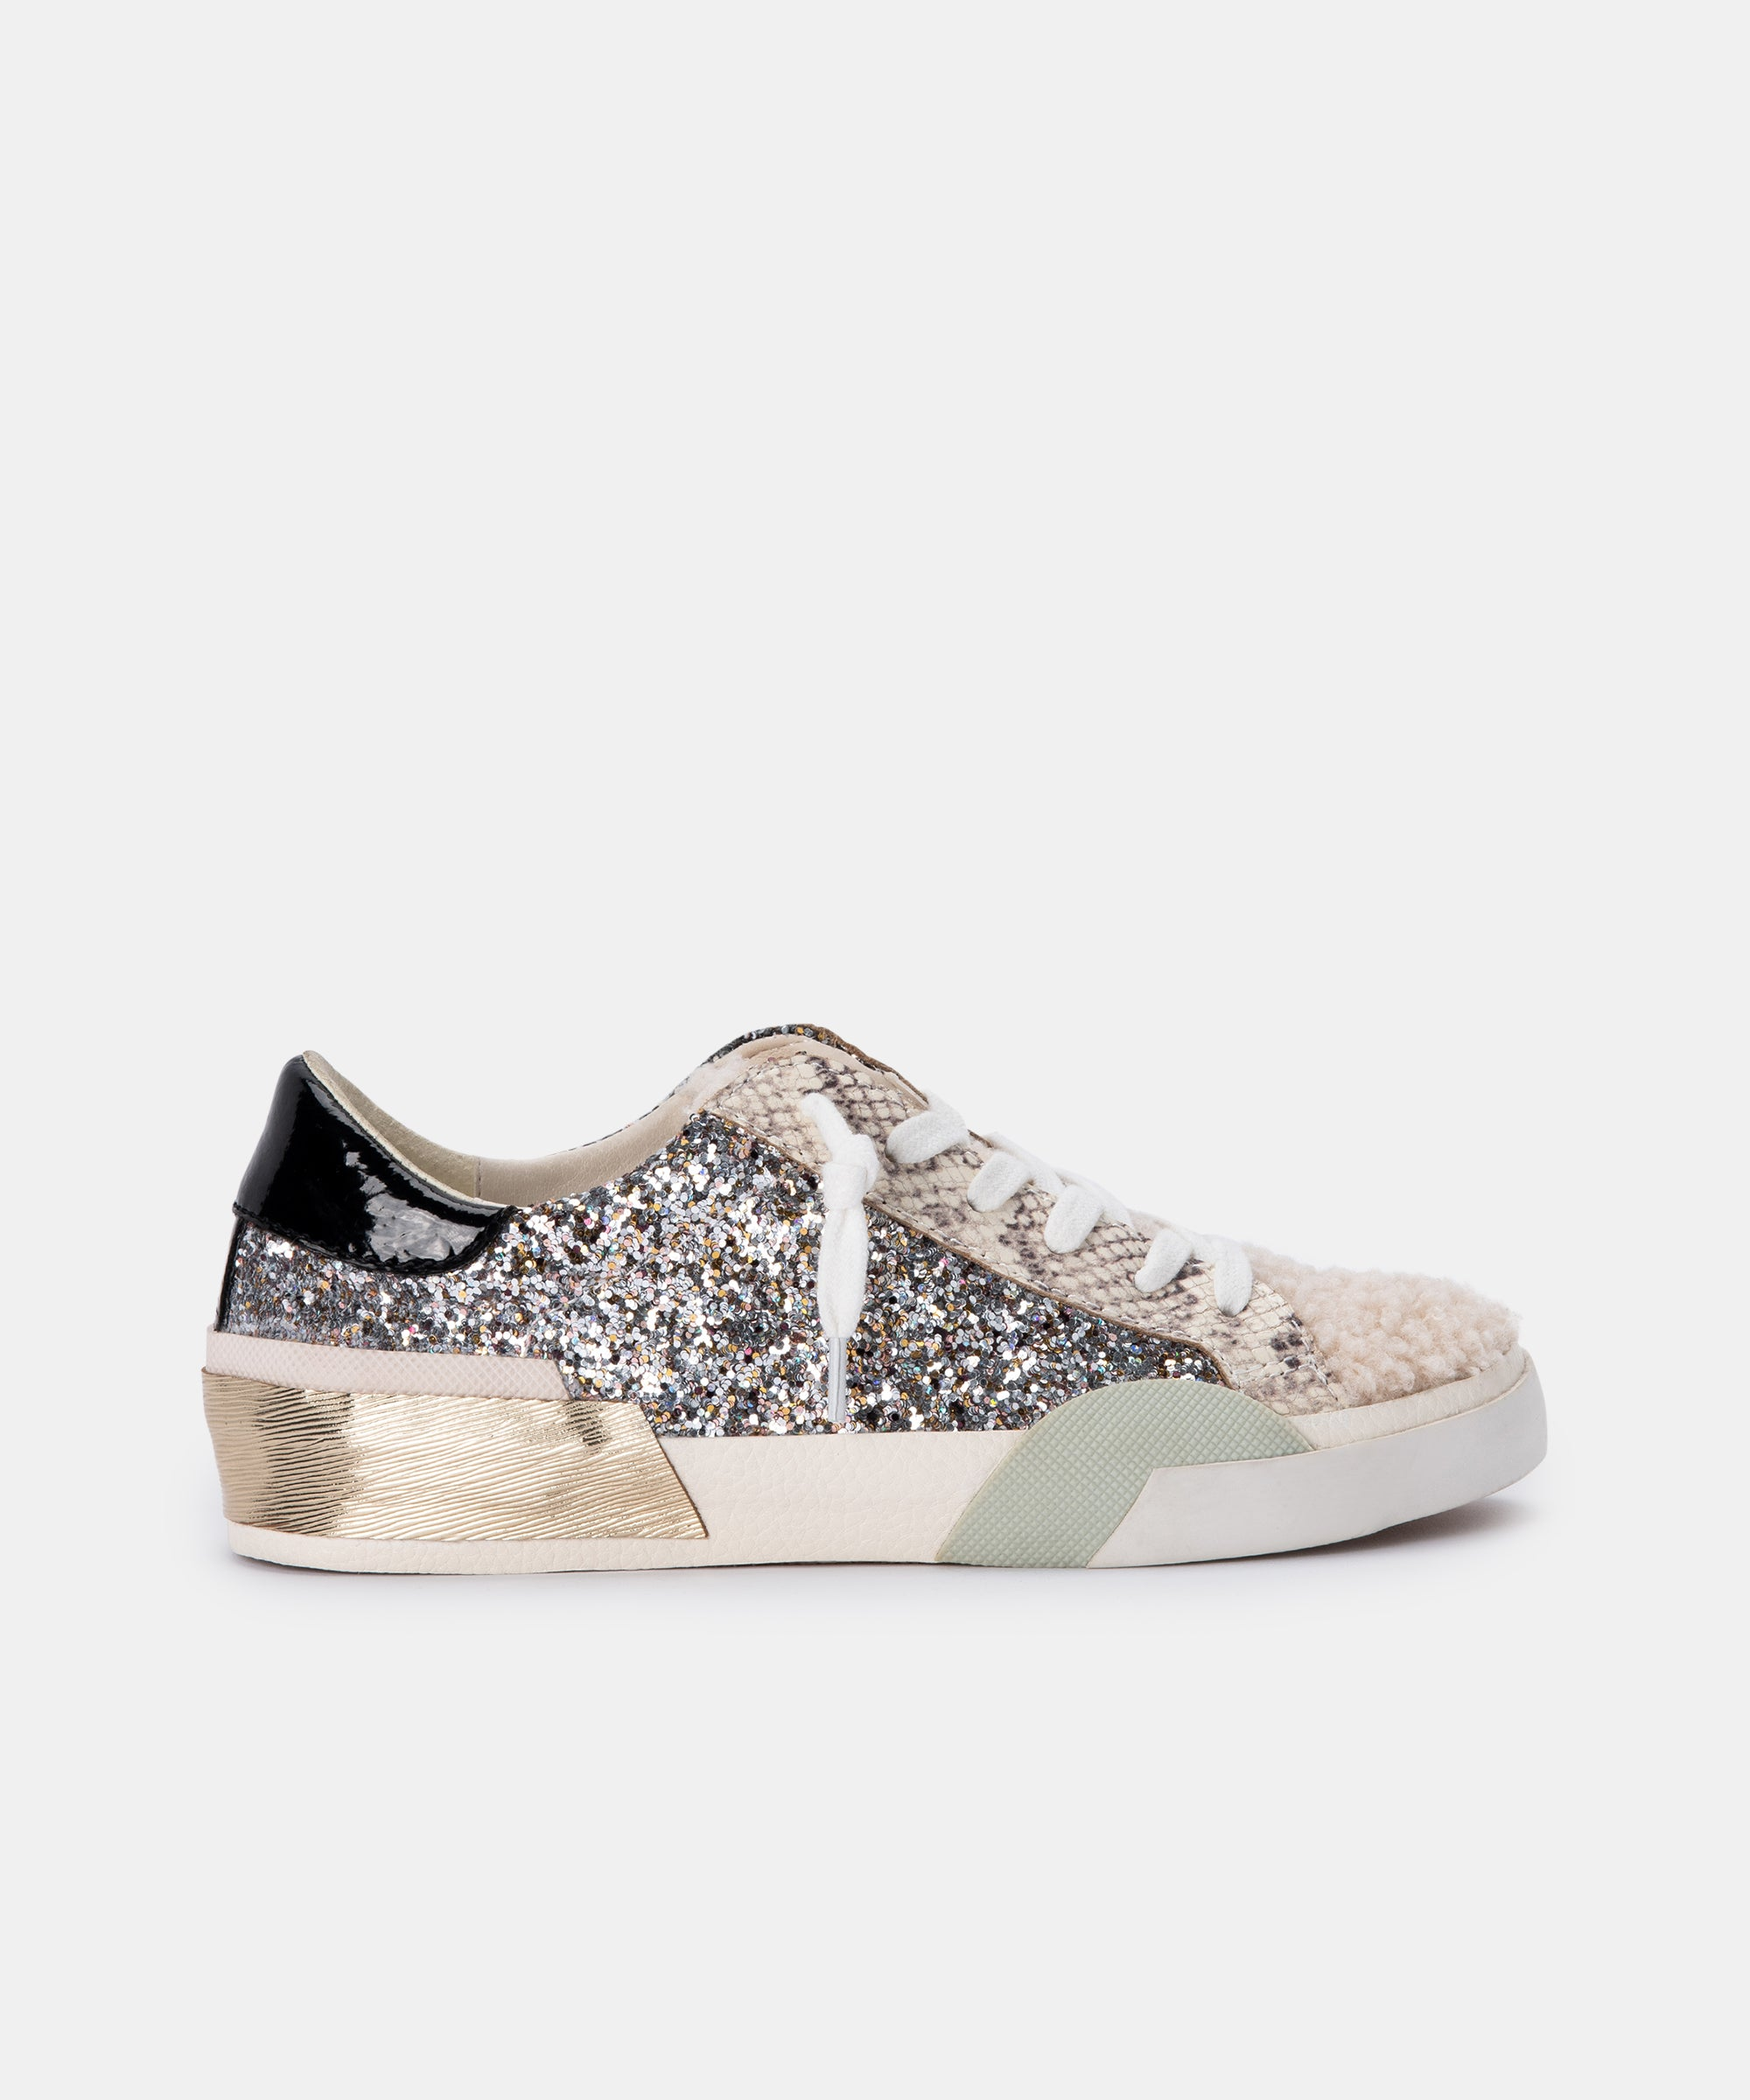 ZINA PLUSH SNEAKERS IN SILVER MULTI GLITTER